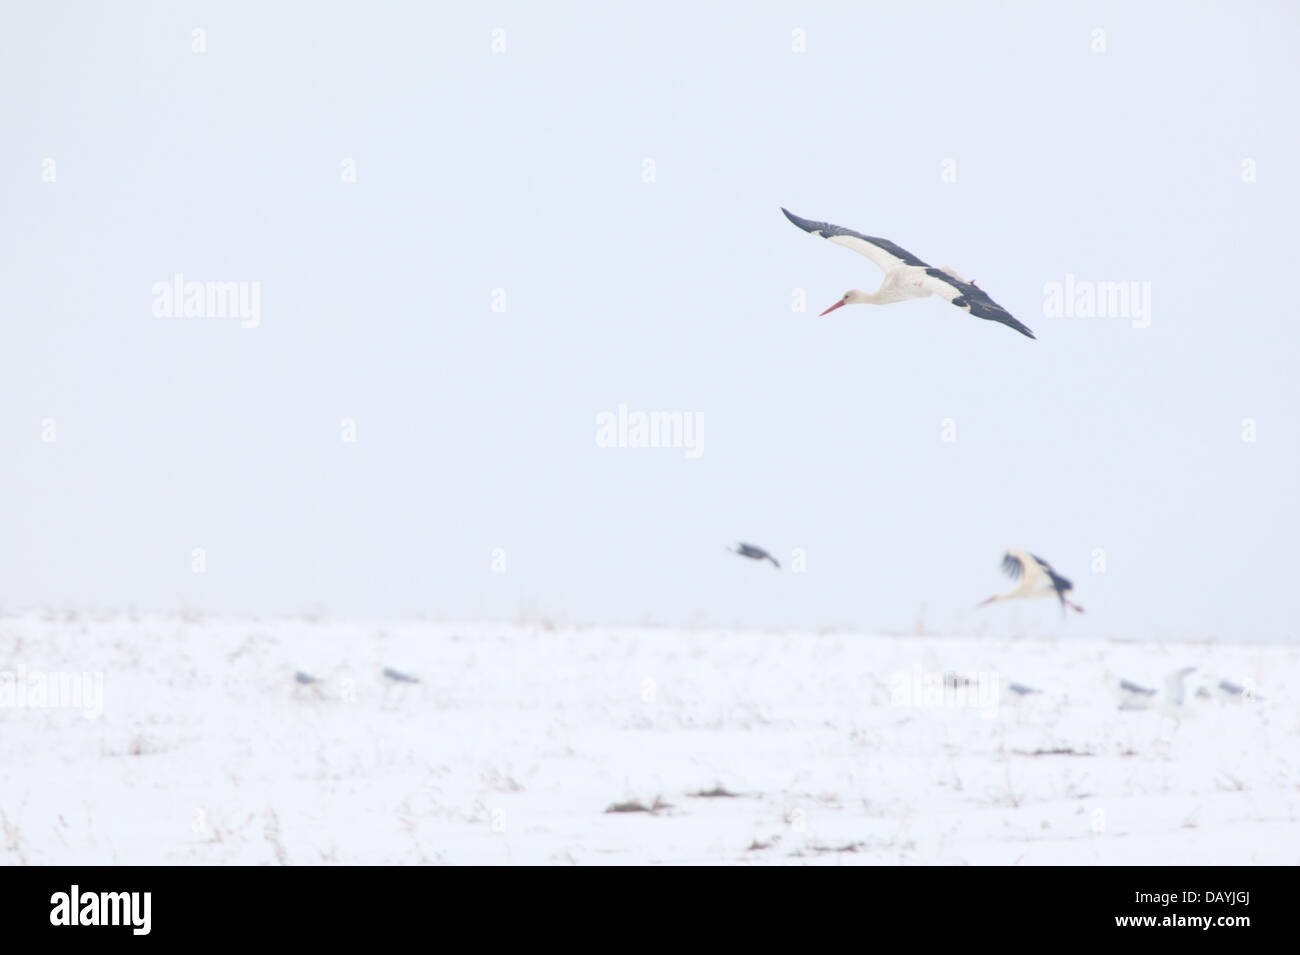 White Storks (Ciconia ciconia) flying over snowy field in spring(April). Europe, Estonia Stock Photo